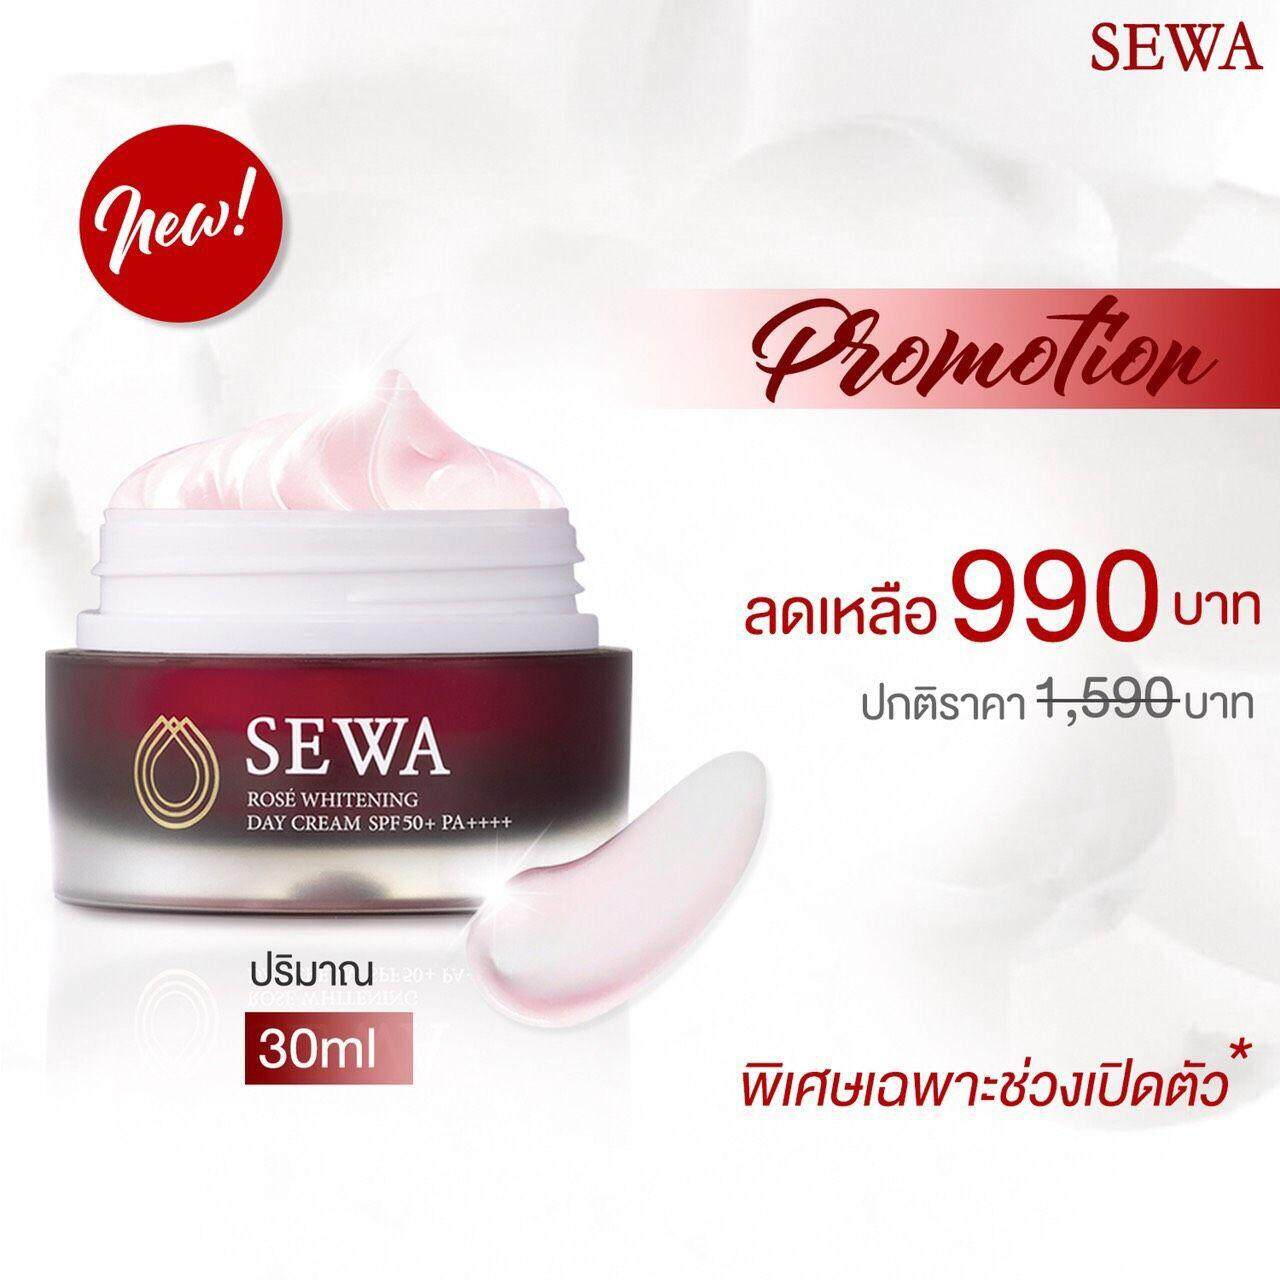 ขายดีมาก! ส่งฟรี KERRY **Sewa Rose Whitening Day Cream SPF 50 PA++++ 50 ml.